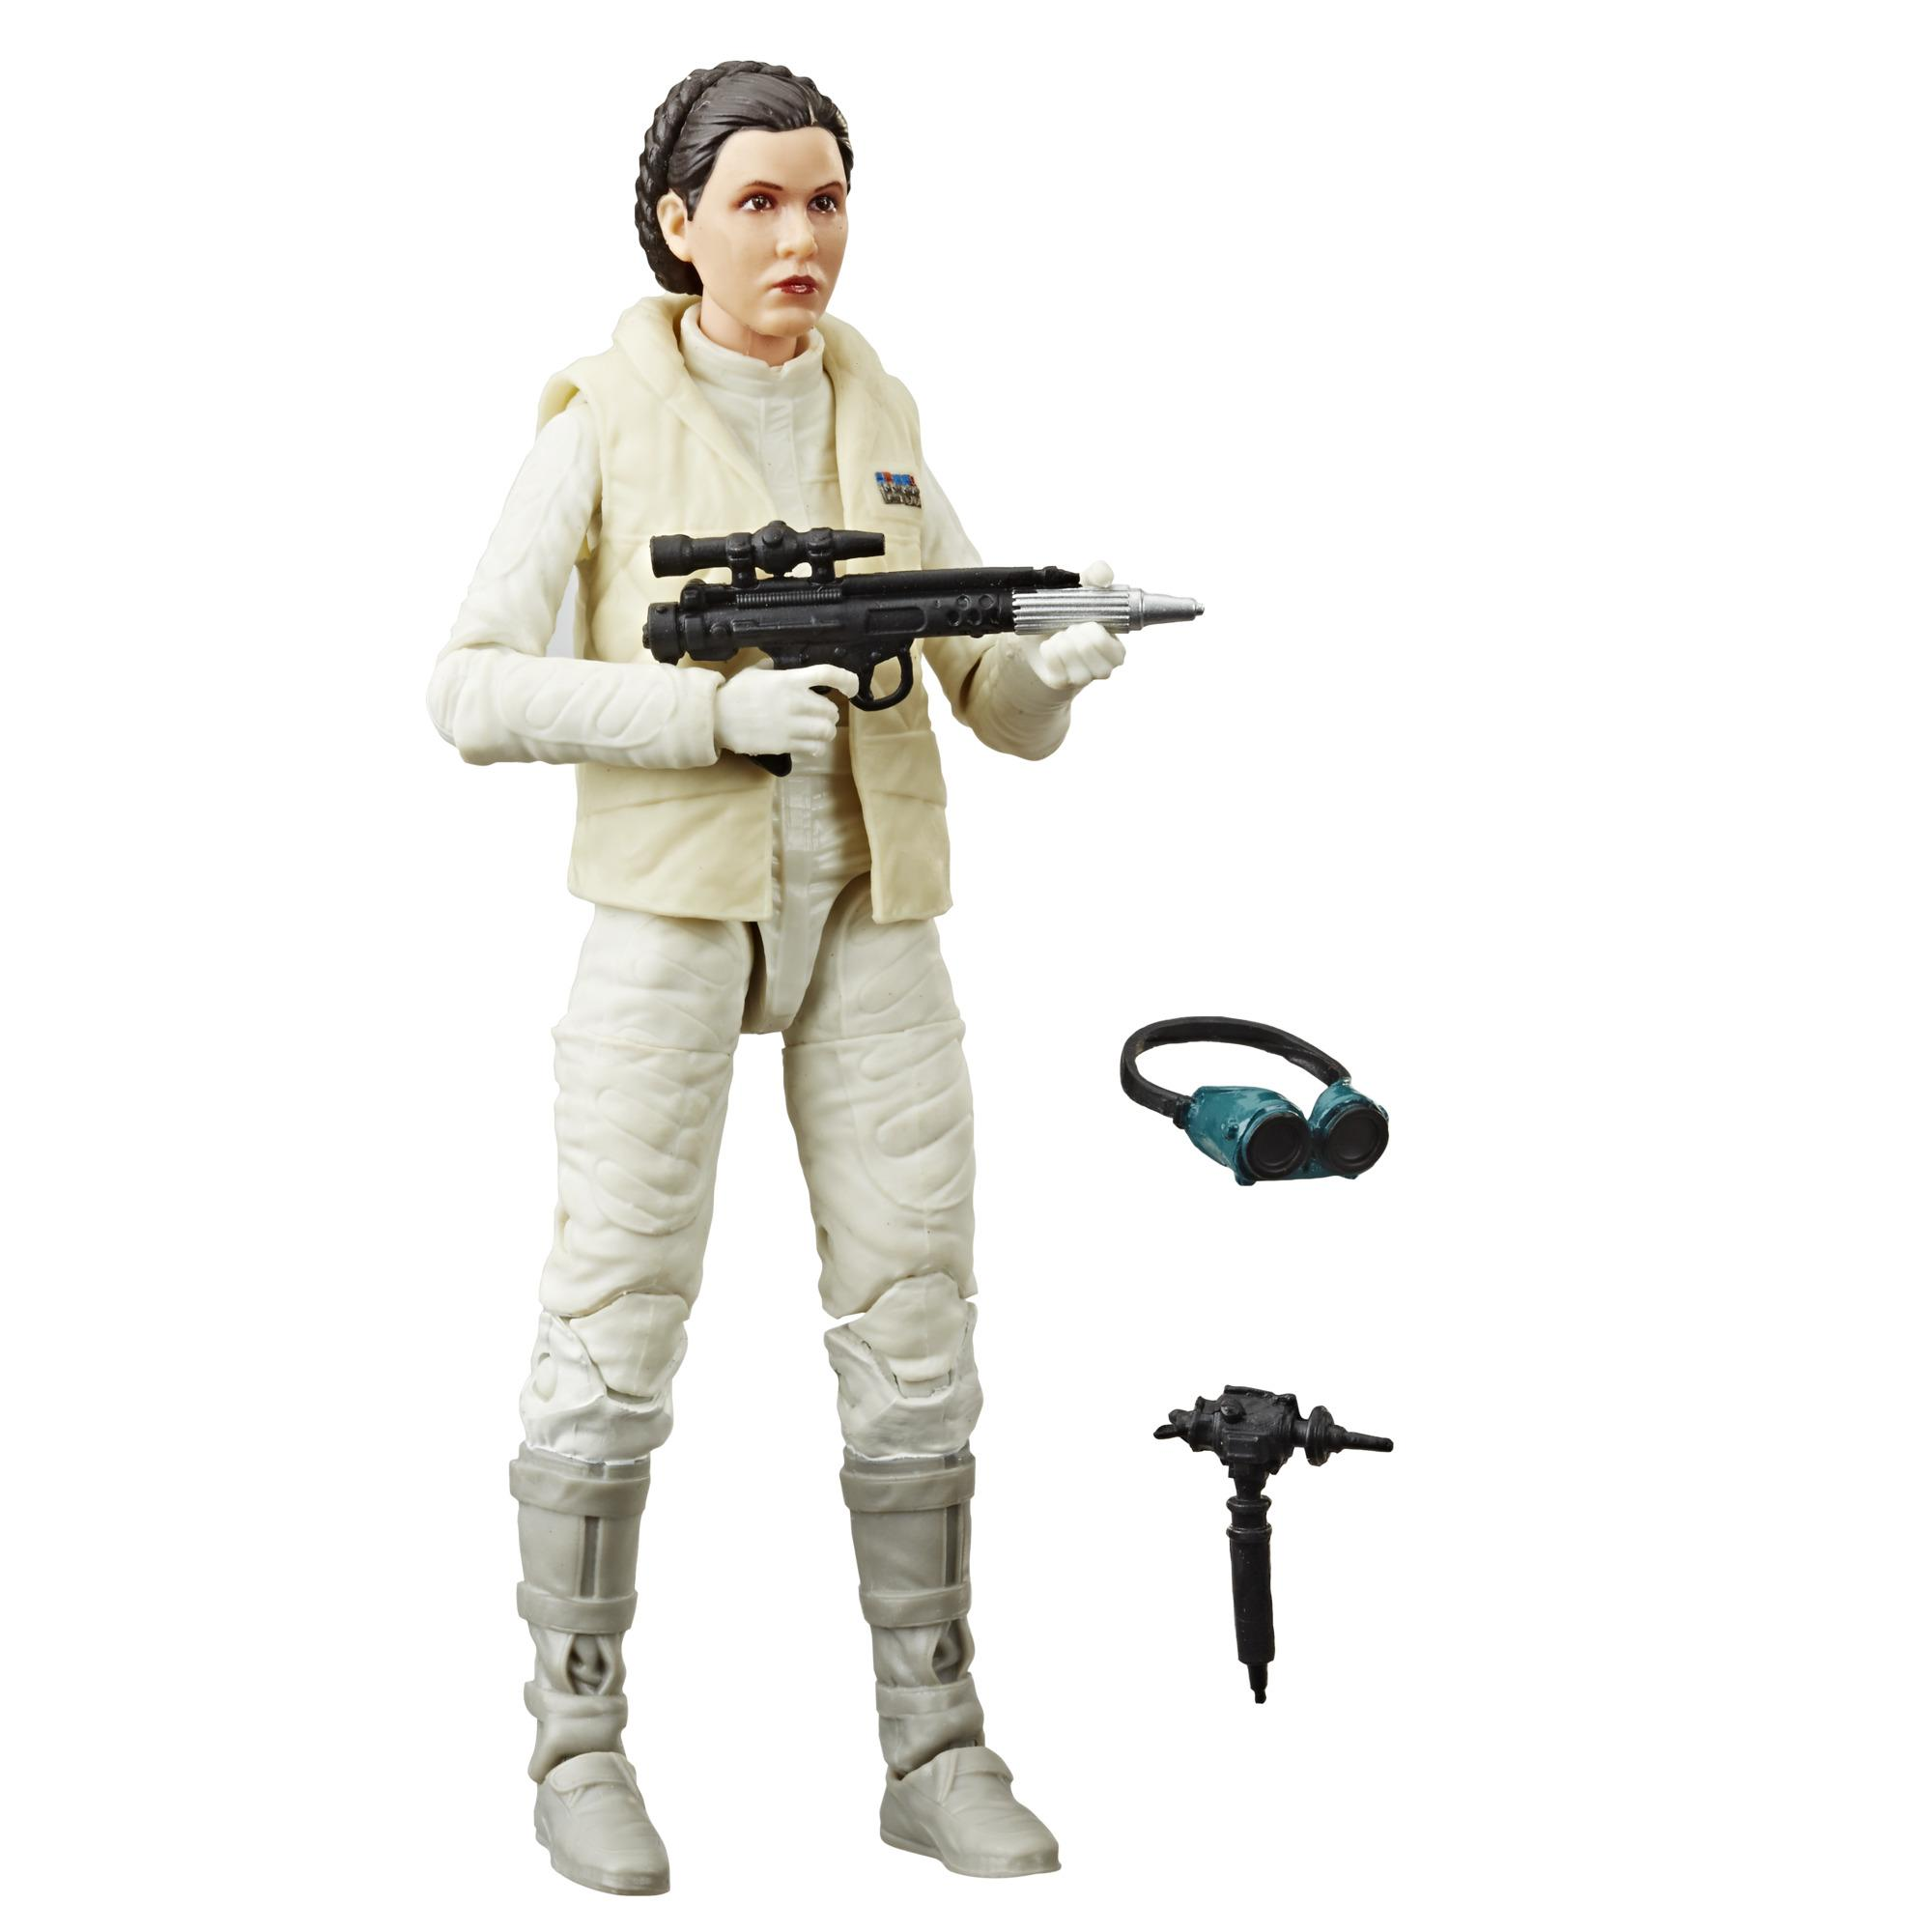 Star Wars The Black Series Princess Leia Organa (Hoth) 6-inch Scale Star Wars: The Empire Strikes Back Action Figure